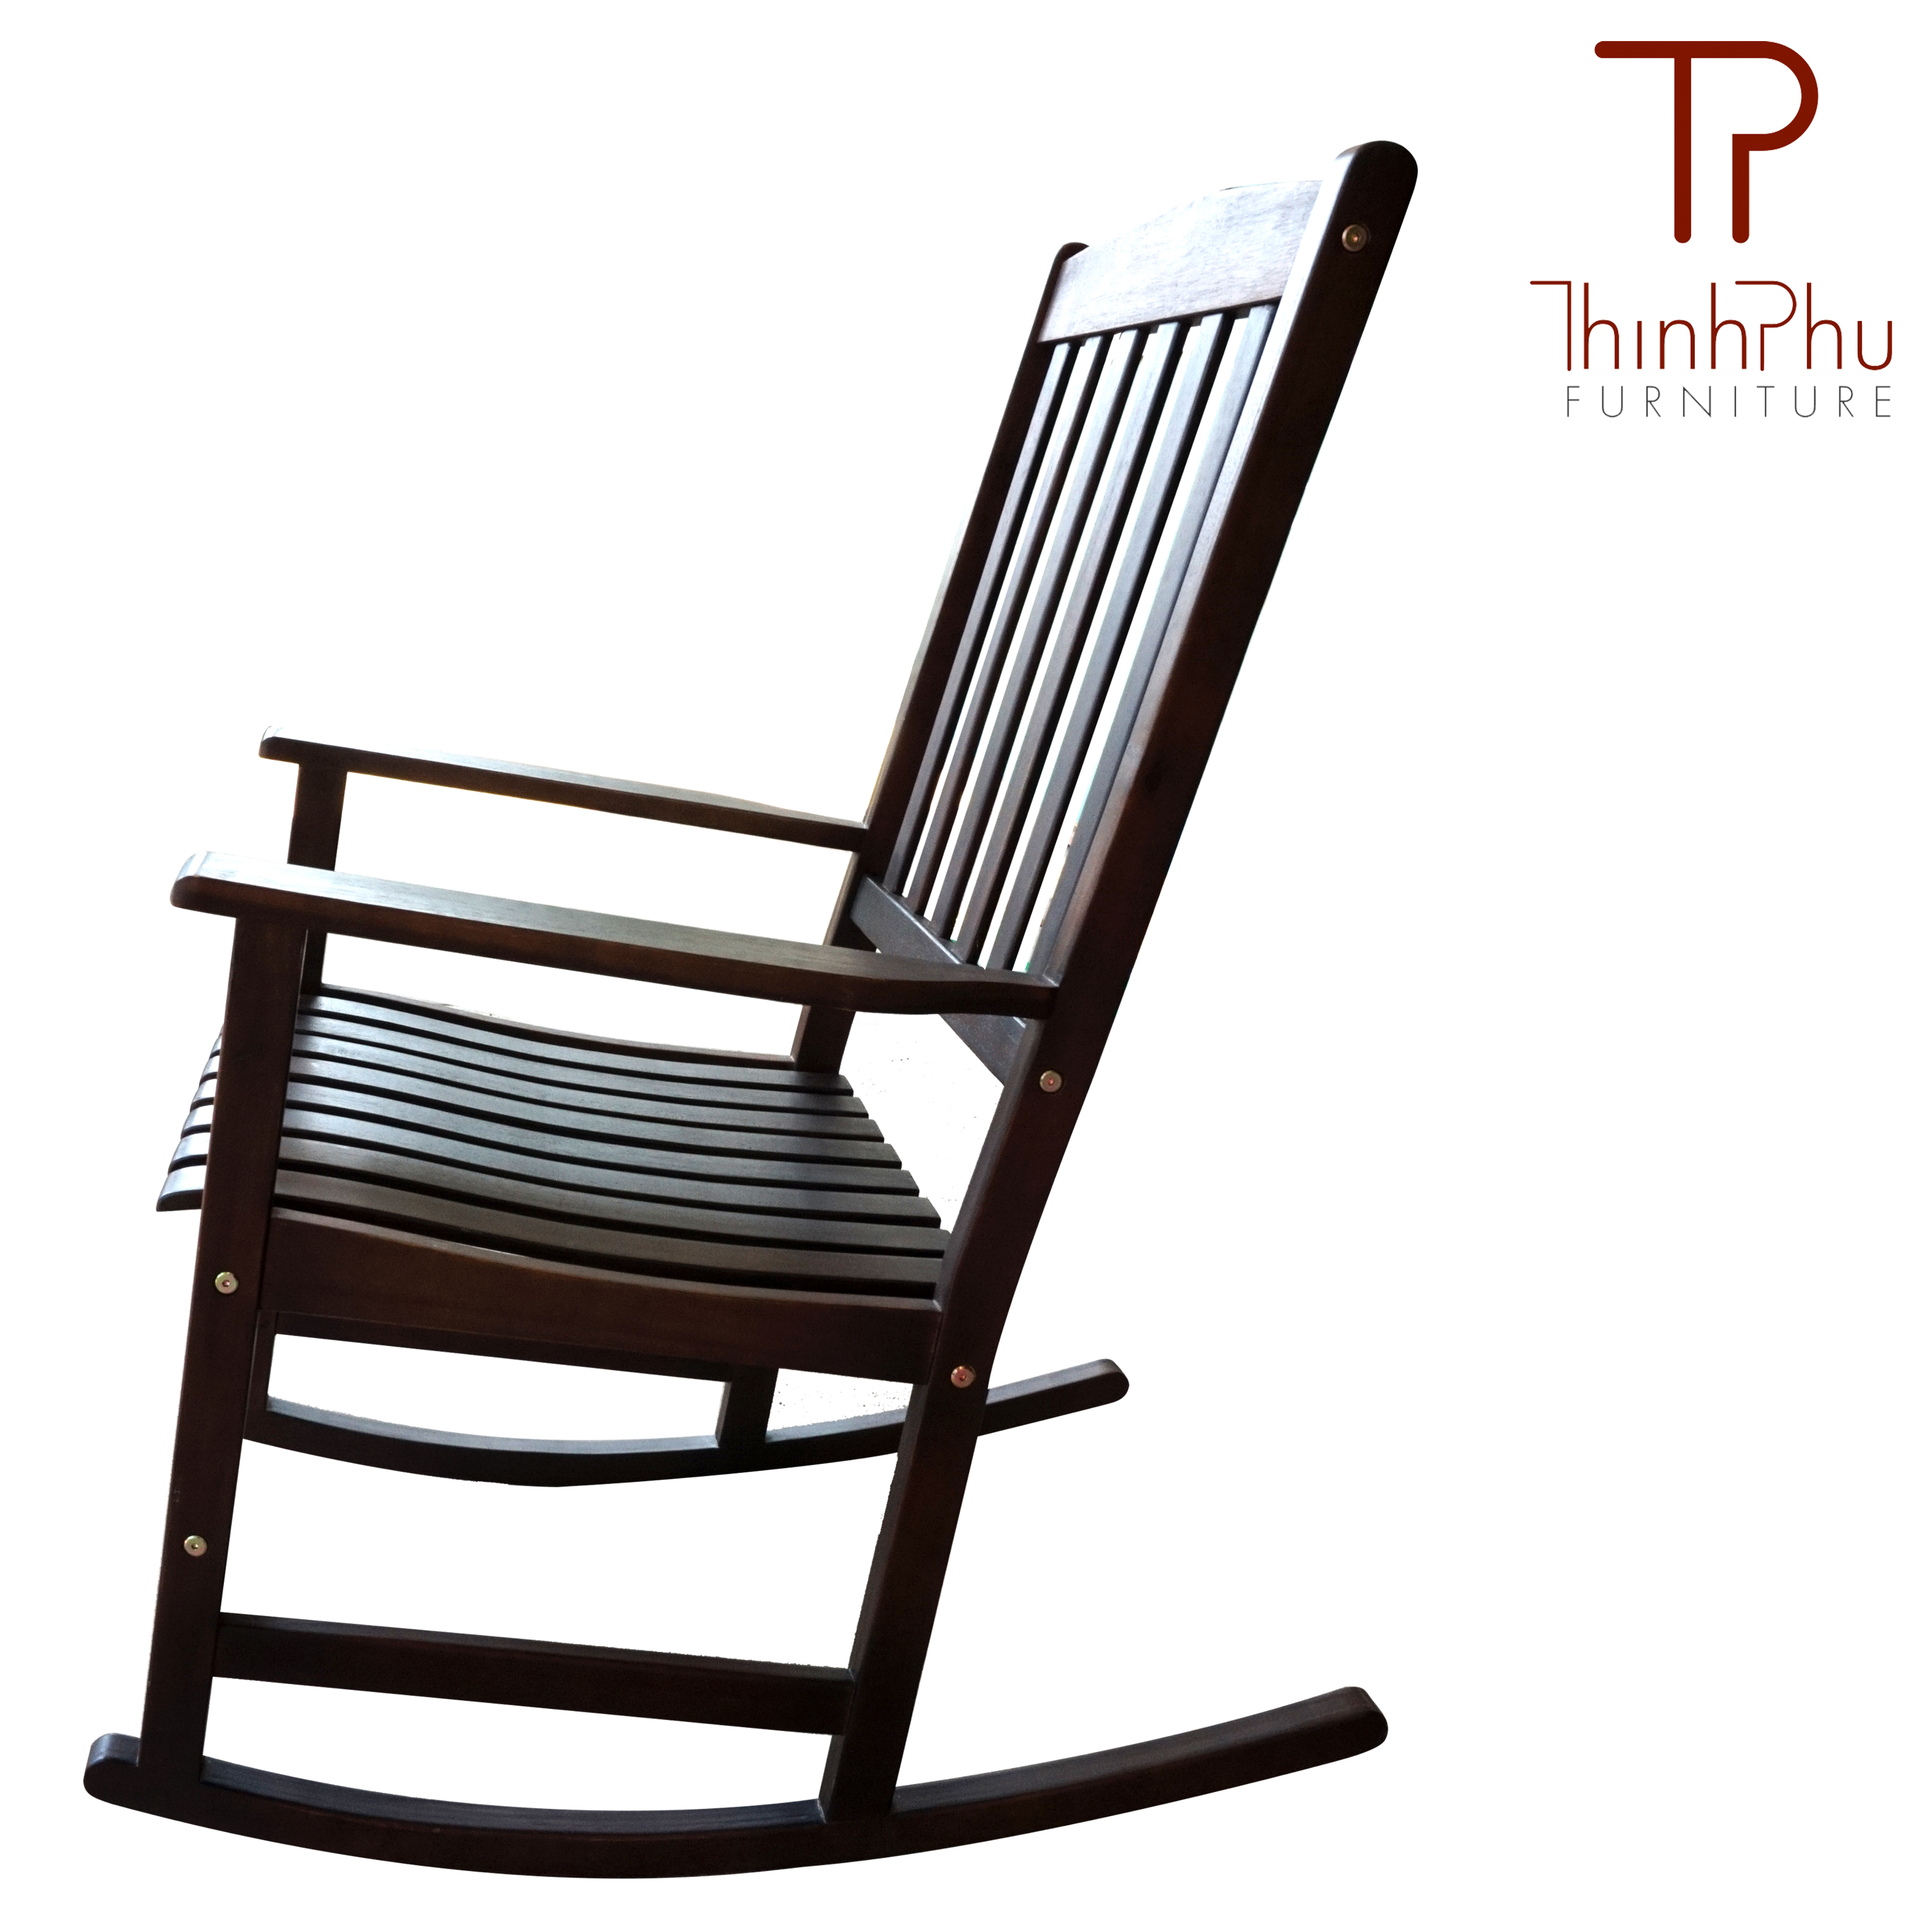 rocking chair rockie thinh phu furniture